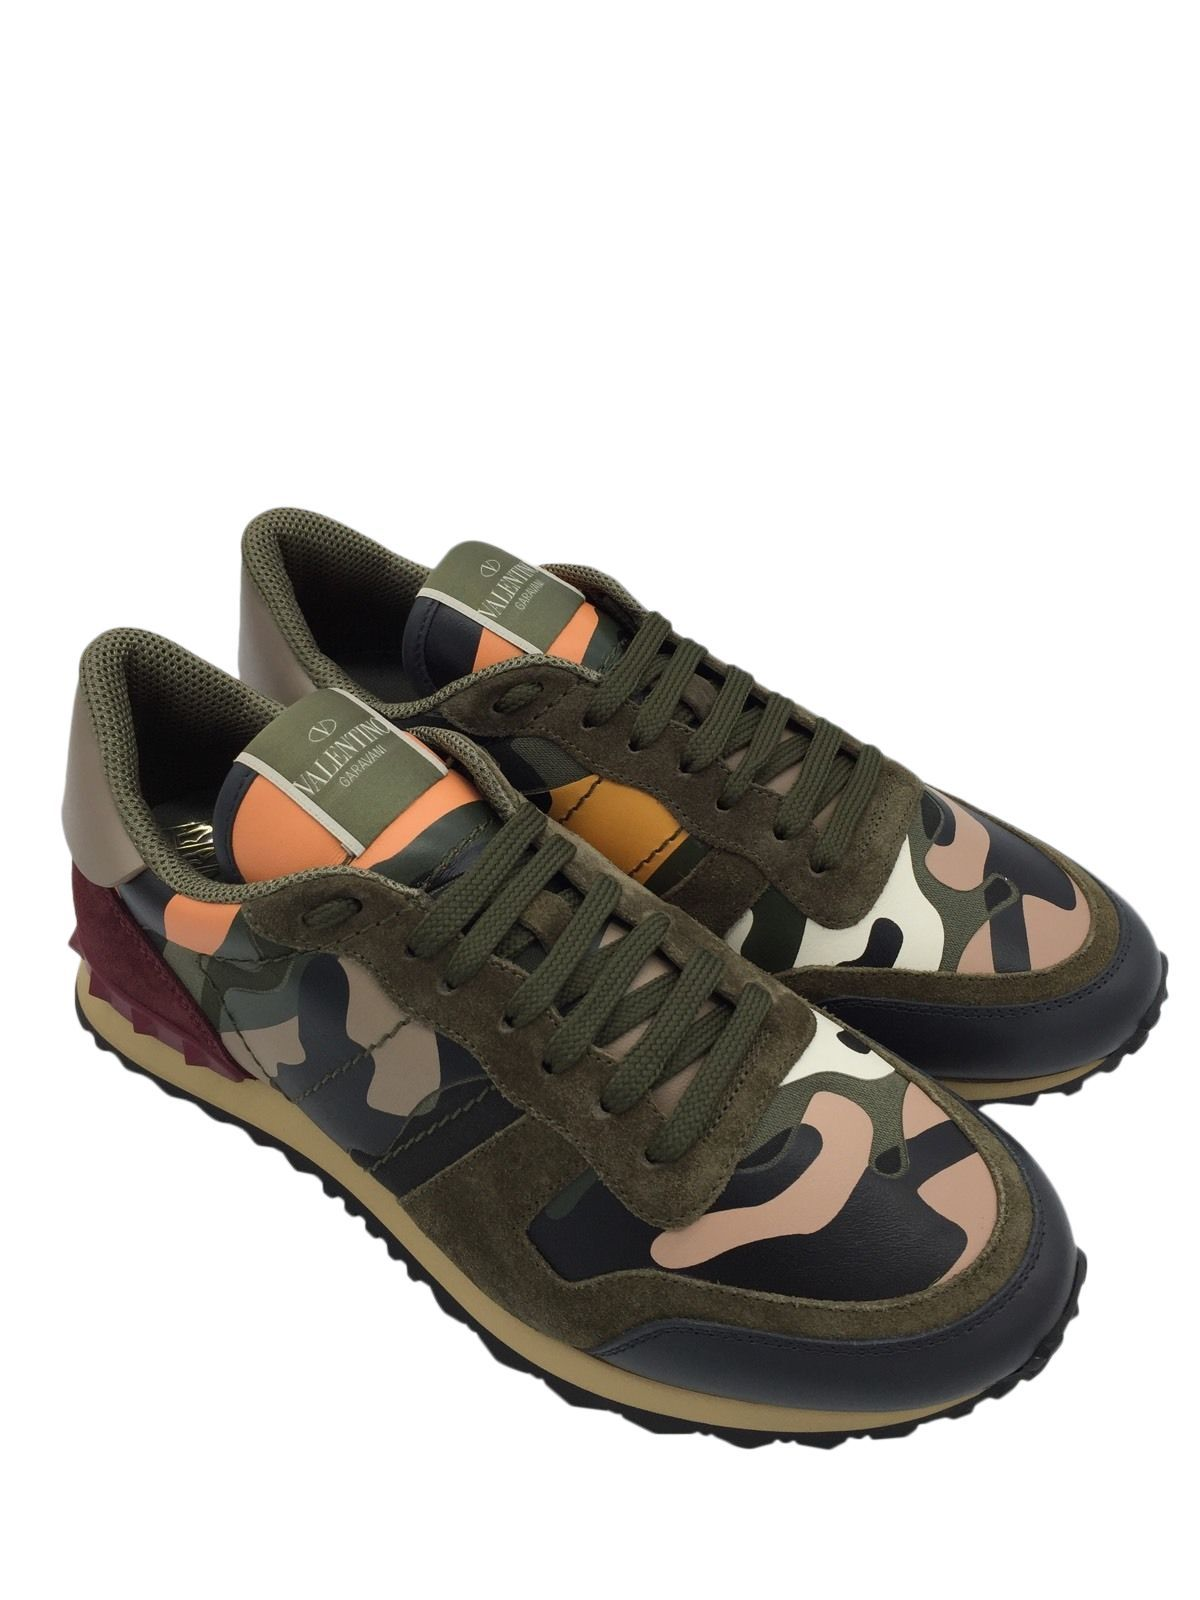 Garavani Rockrunner Camouflage-print Canvas, Leather And Suede Sneakers - GreenValentino